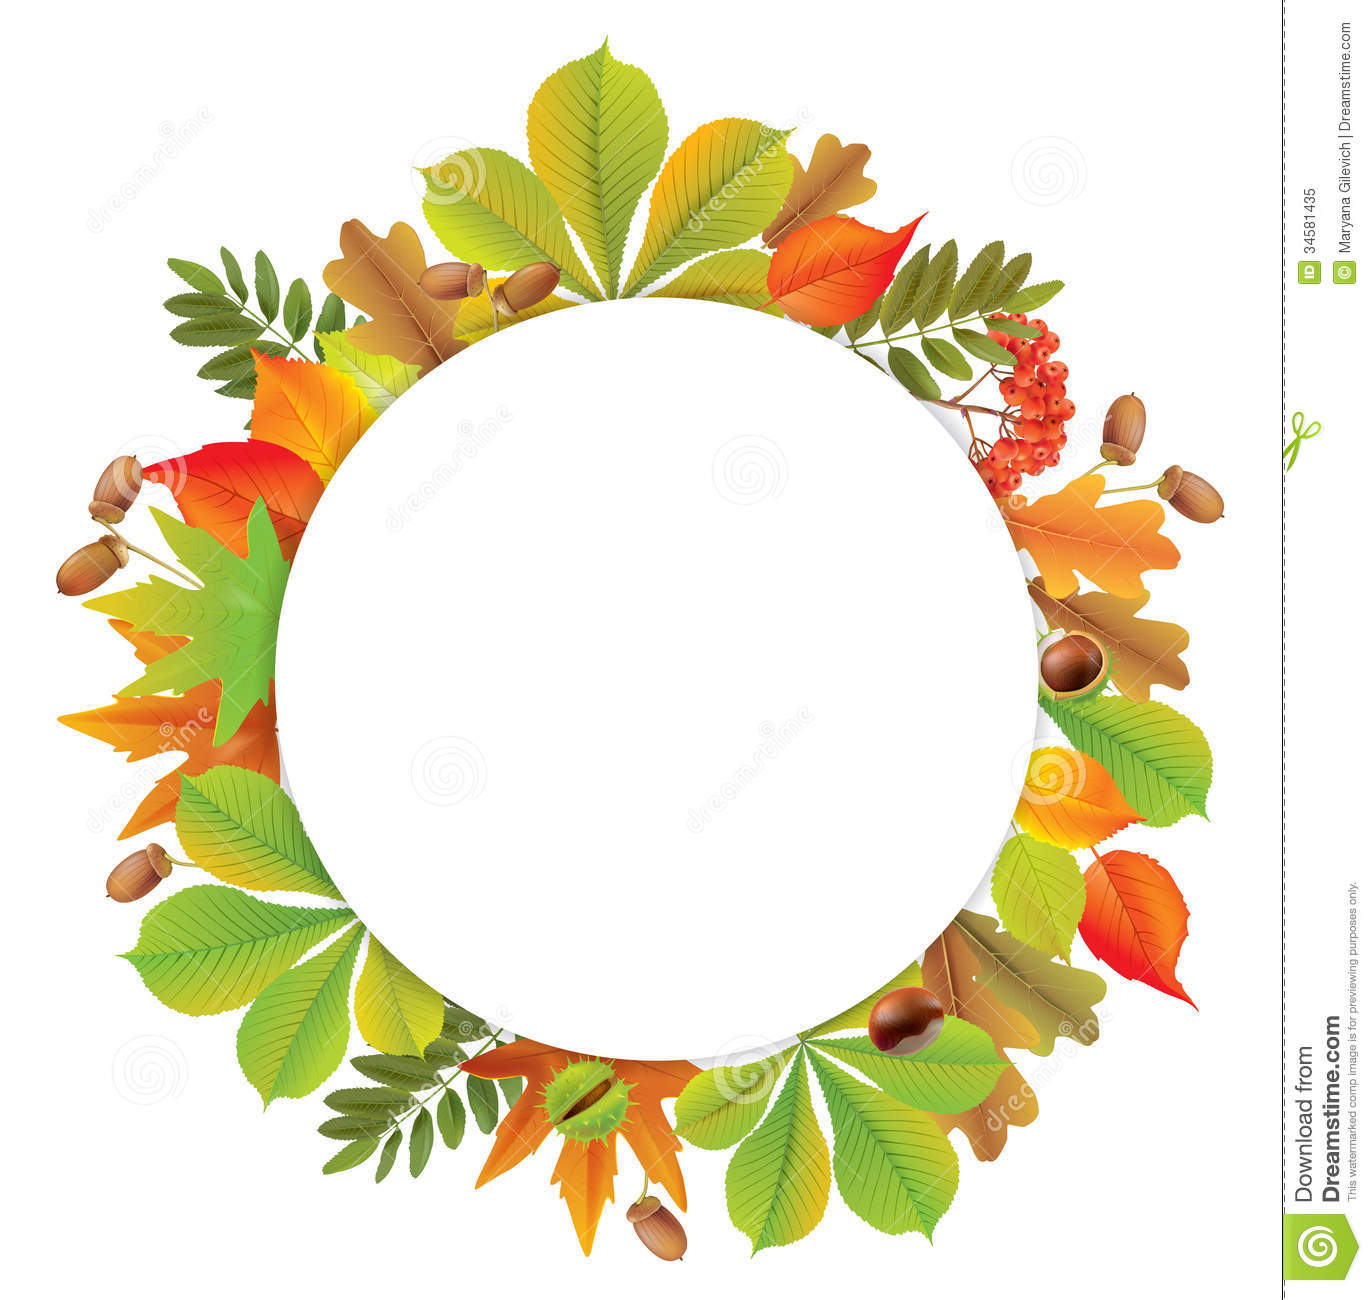 Royalty Free Stock Photo Round Autumn Banner Contains Transparent Objects Eps Image34581435 on Gold Circle Frame